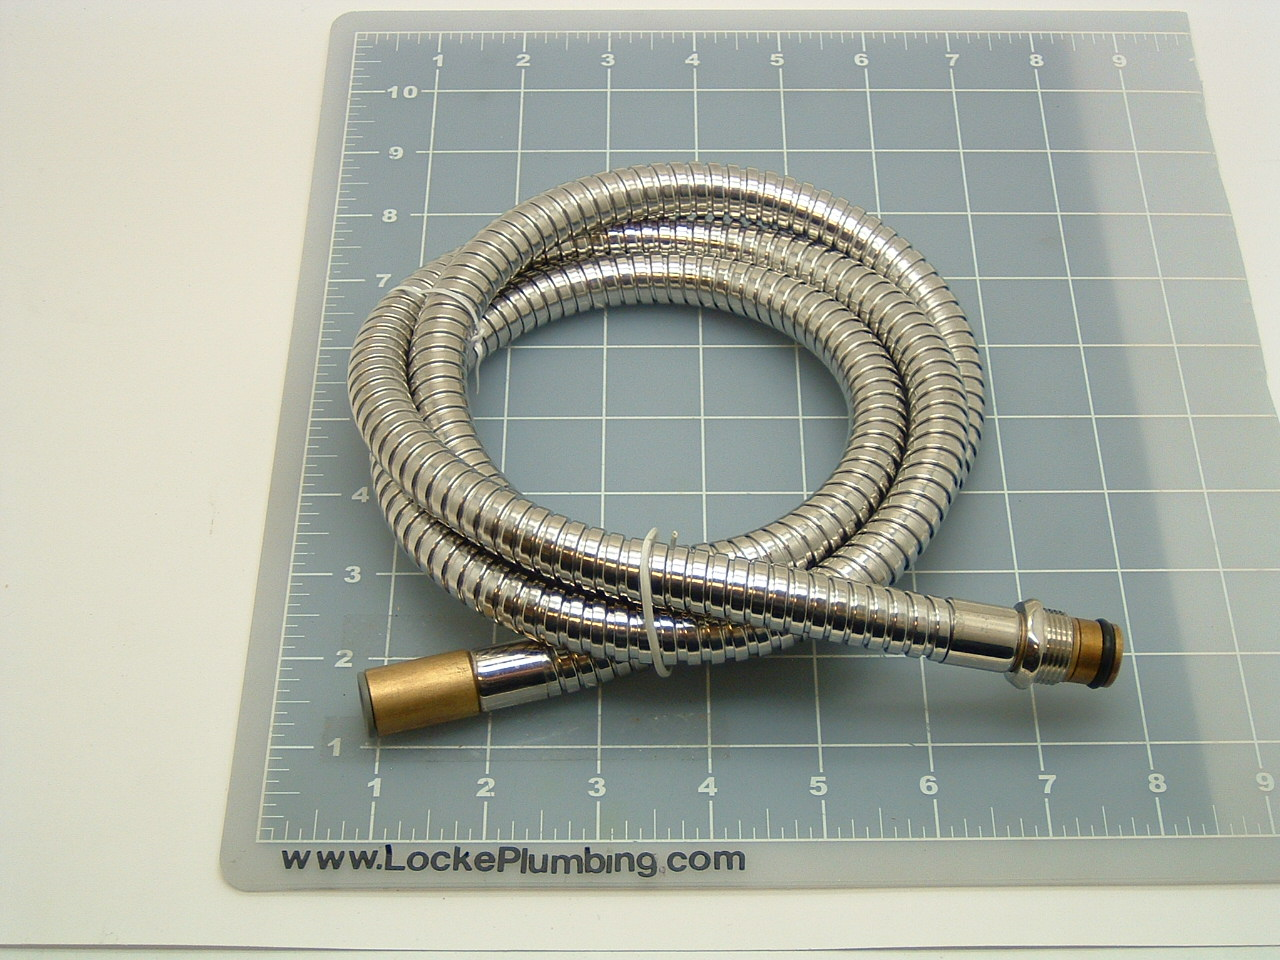 Price Pfister 951-062 Pull Out Hose S/A - Locke Plumbing